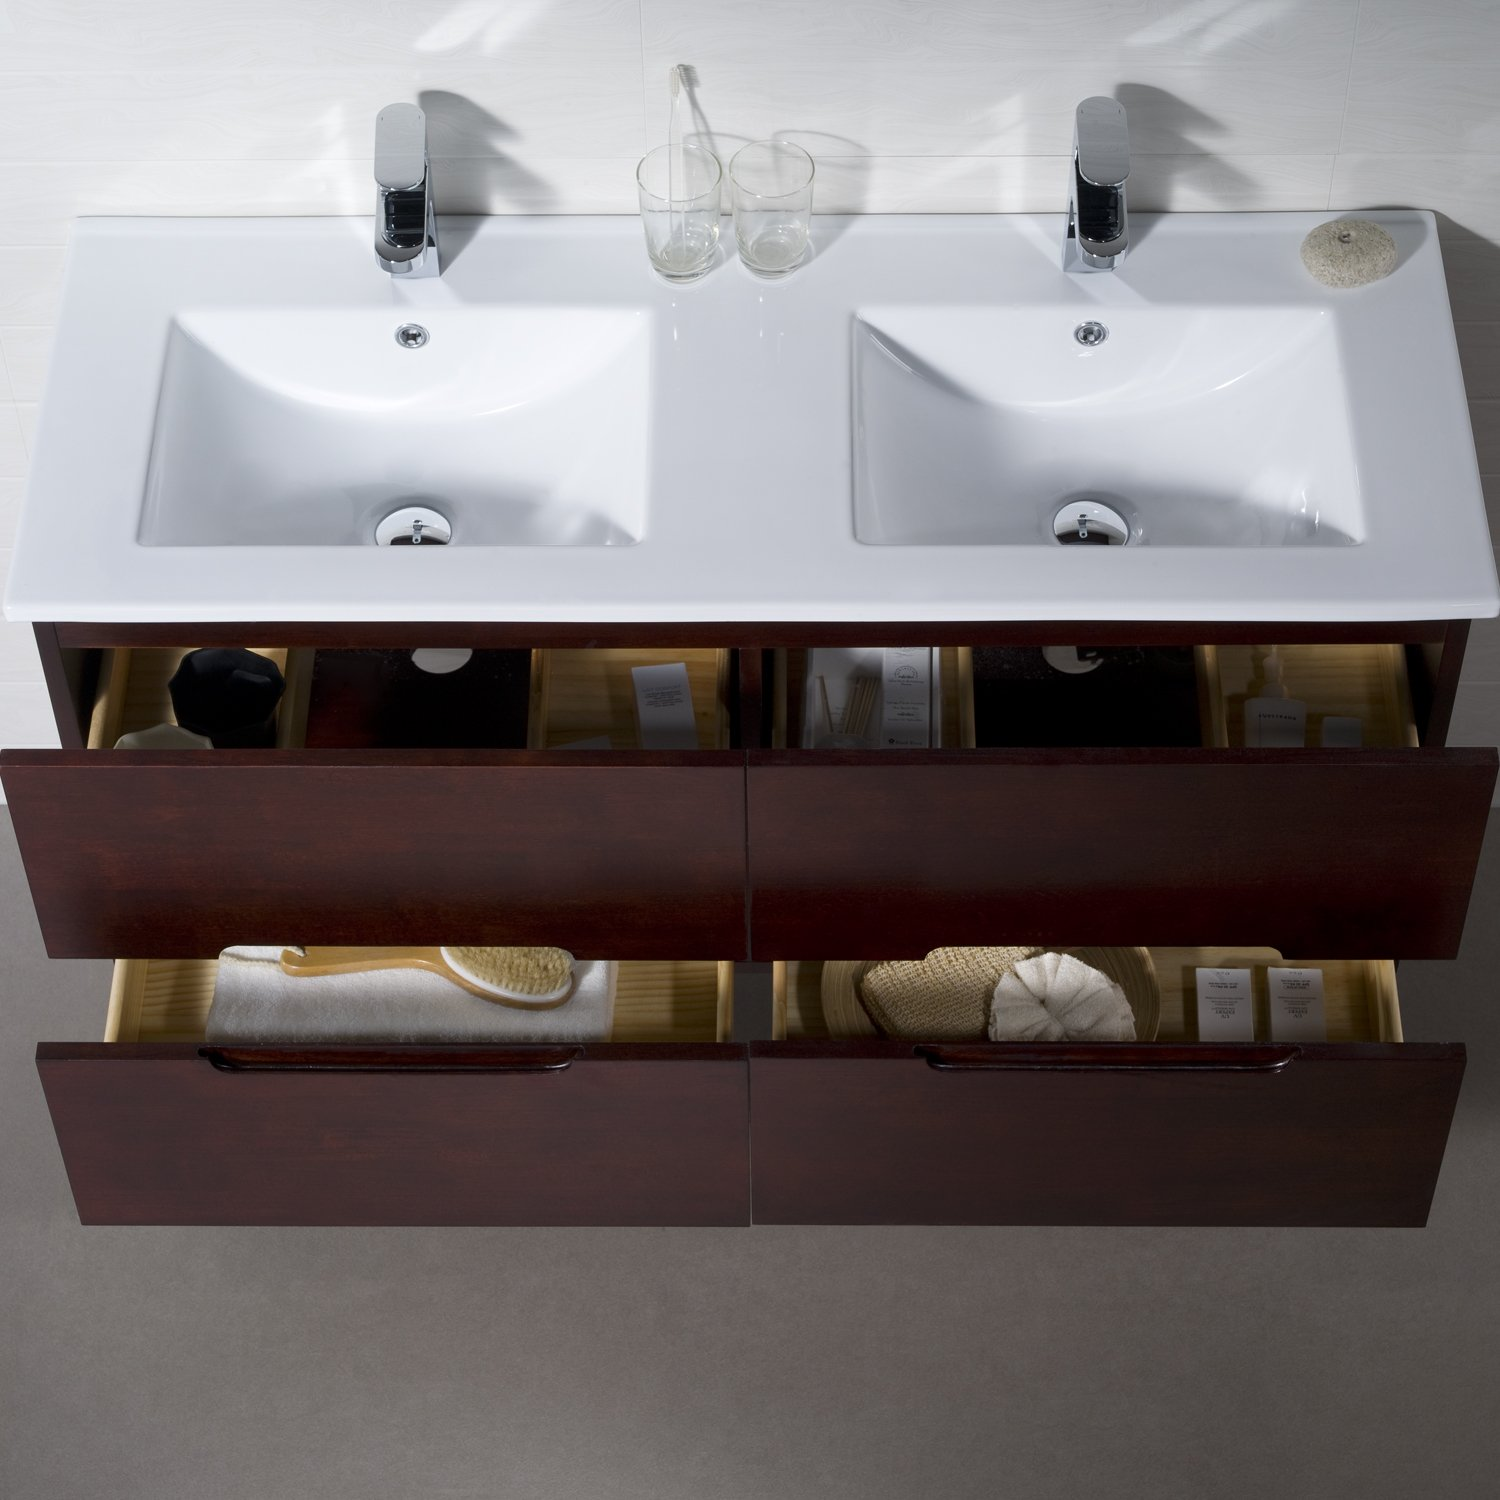 Wall Mount Bathroom Vanity Elton 48 Dark Walnut Double Sink with Porcelain Top by INOLAV